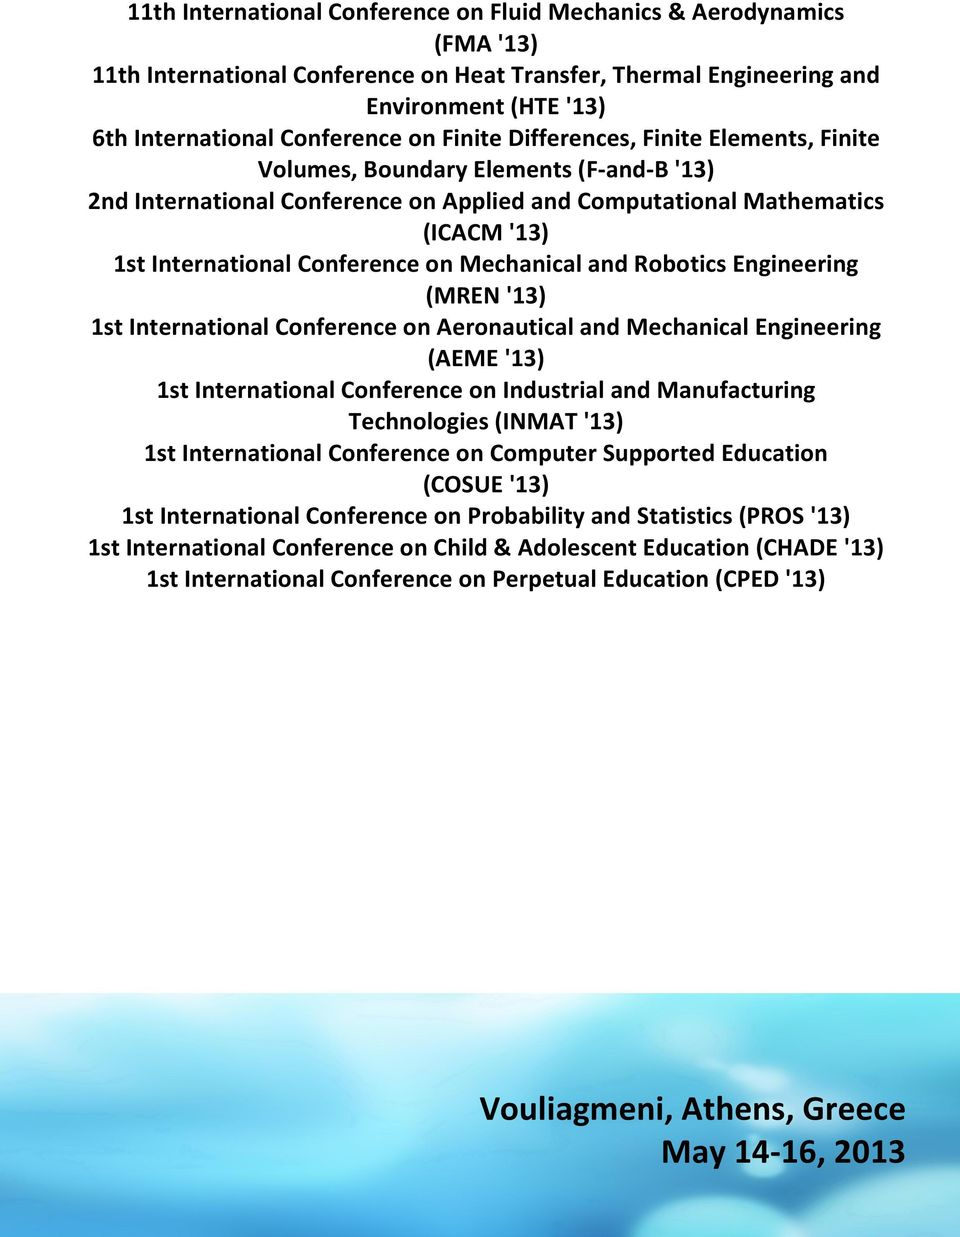 Mechanical and Robotics Engineering (MREN '13) 1st International Conference on Aeronautical and Mechanical Engineering (AEME '13) 1st International Conference on Industrial and Manufacturing